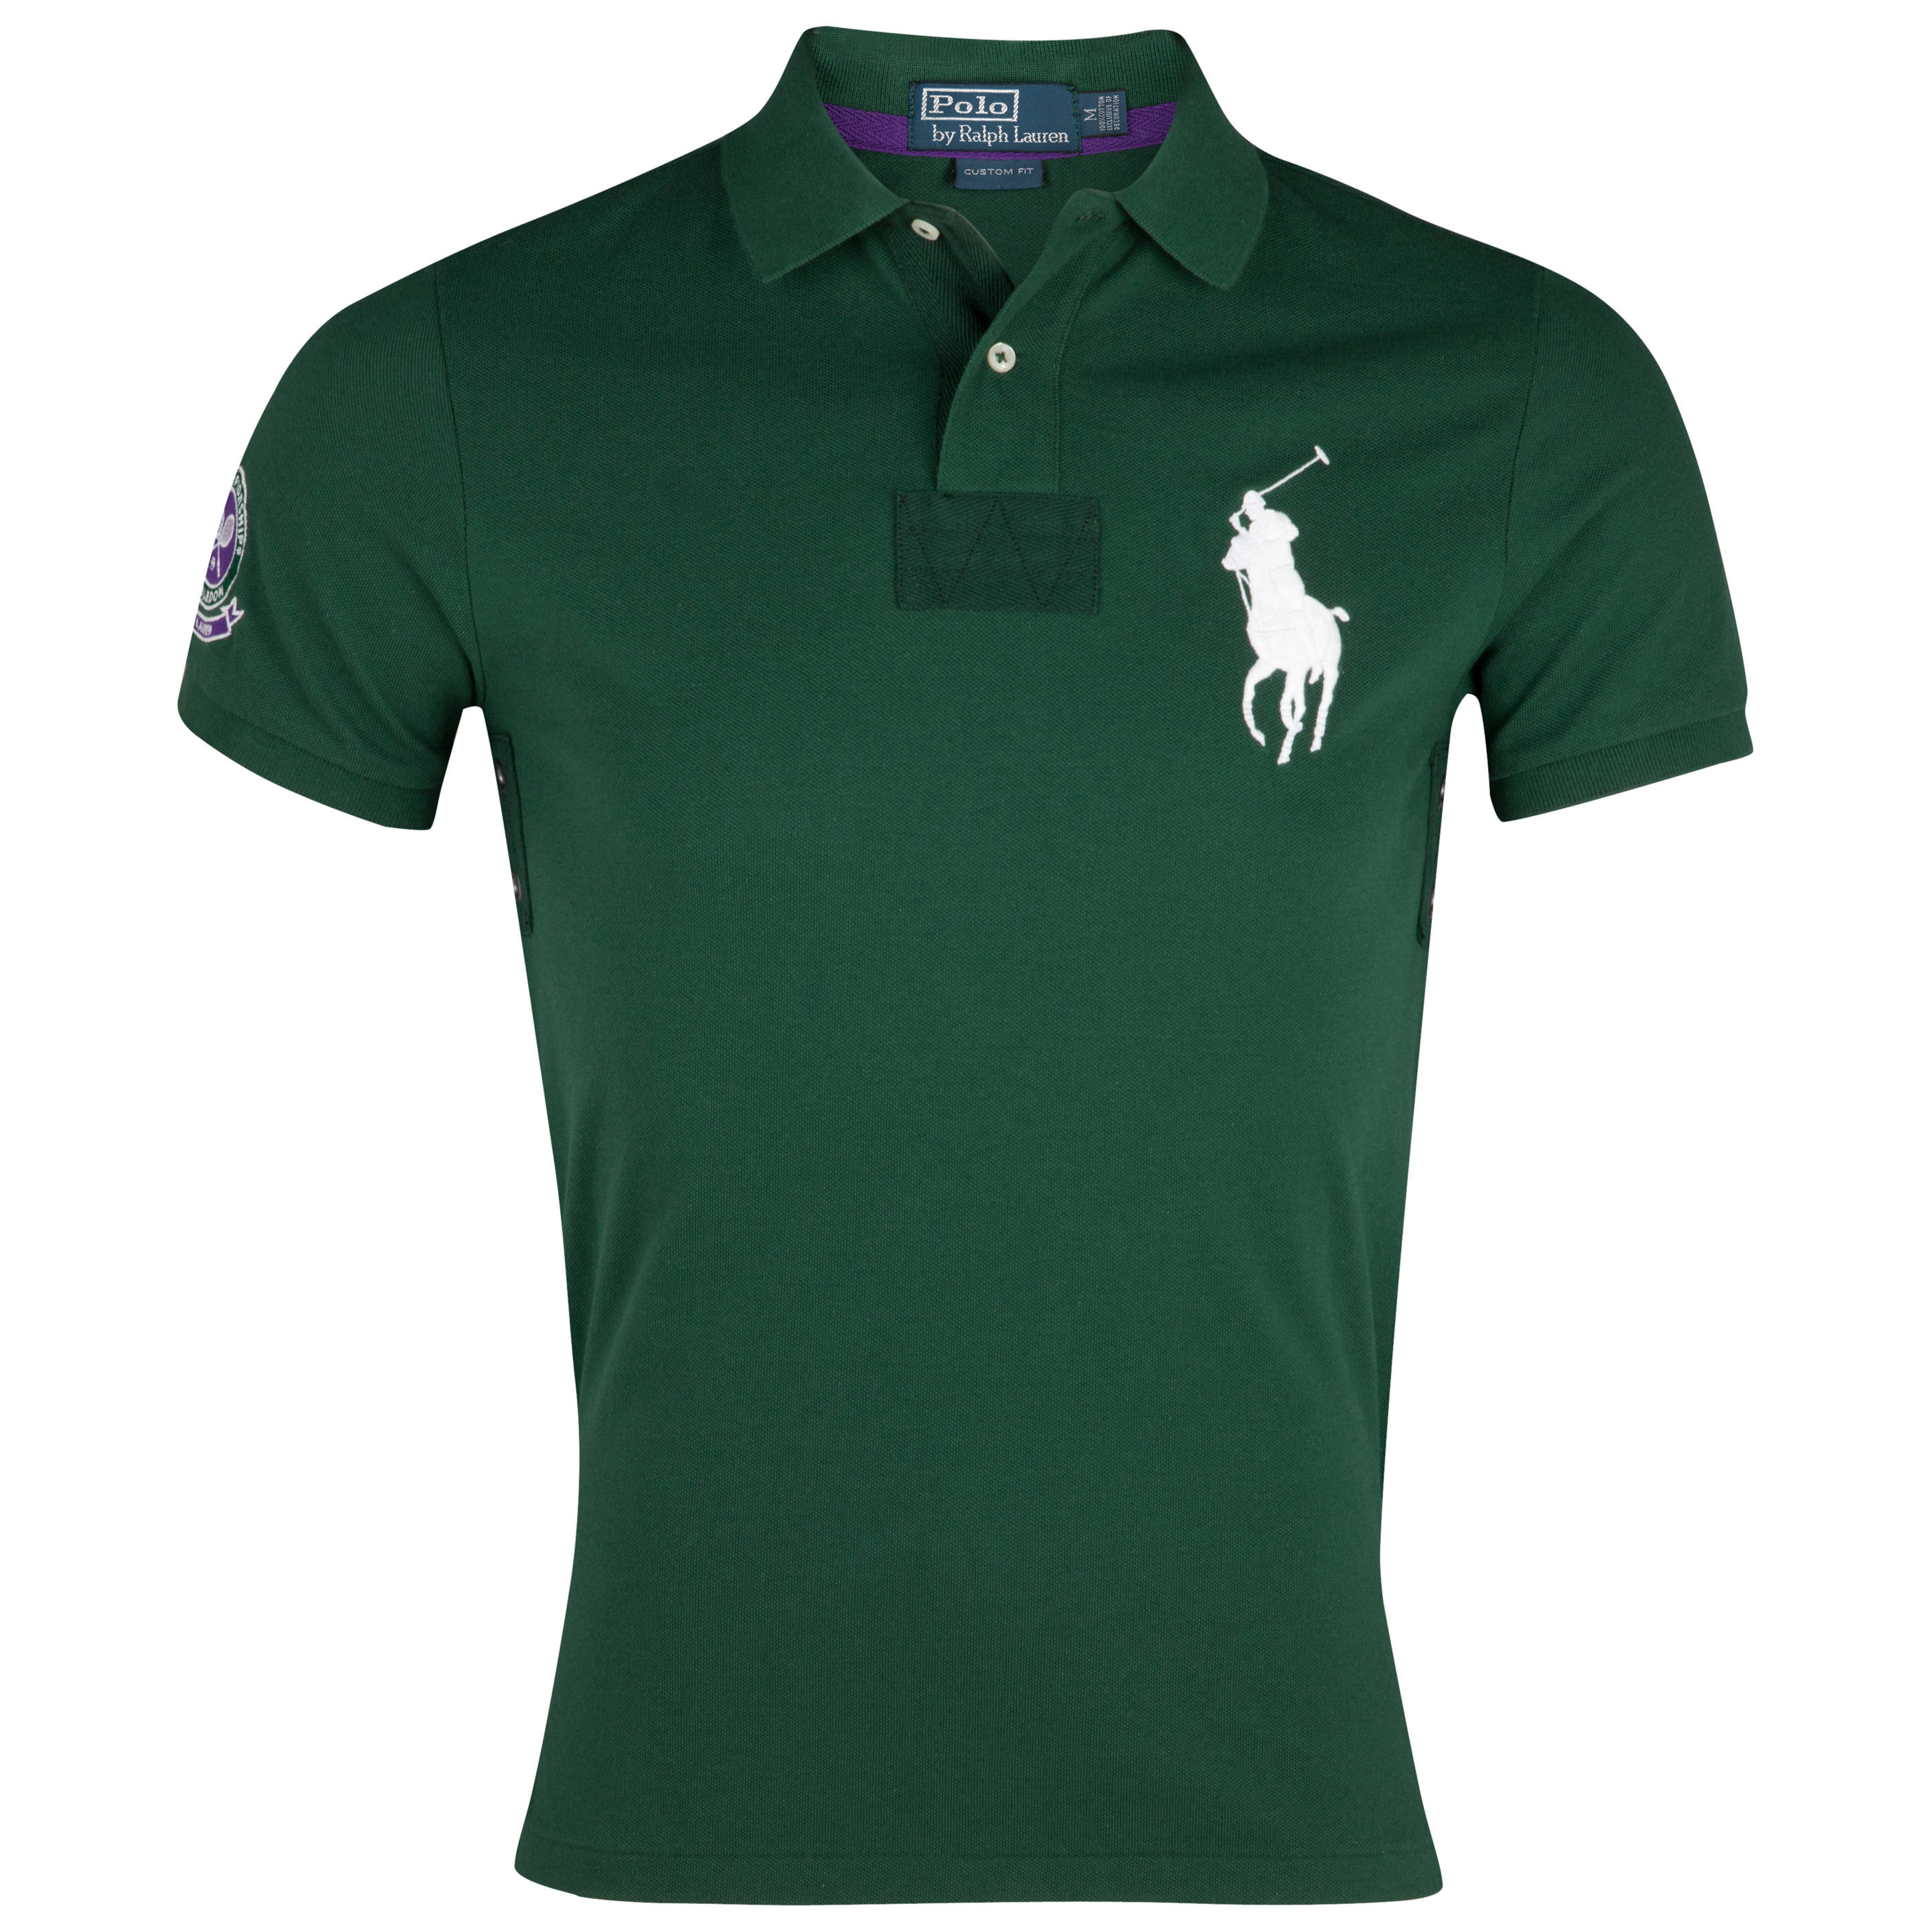 Polo Ralph Lauren Wimbledon  Short Sleeve Polo - Northwest Pine